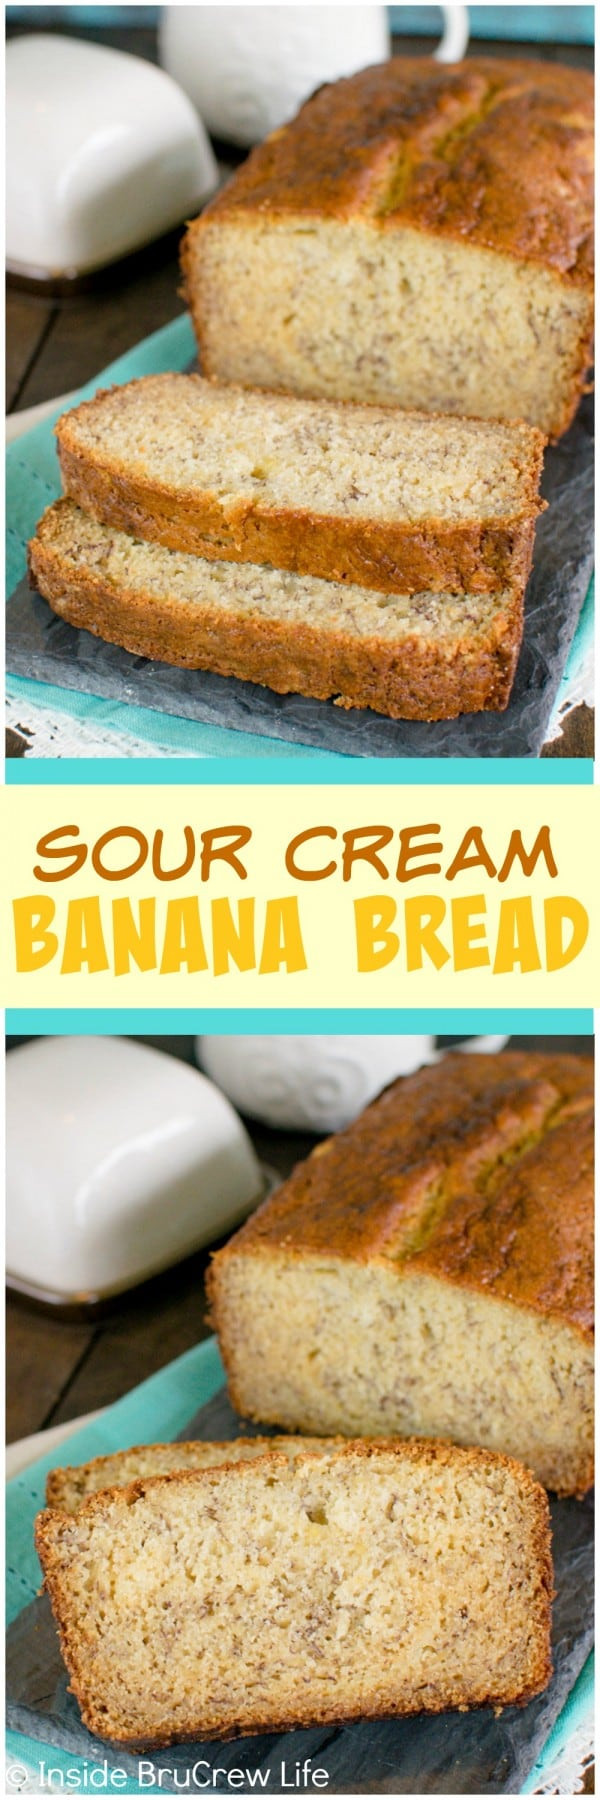 Banana Bread With Sour Cream  Sour Cream Banana Bread Inside BruCrew Life